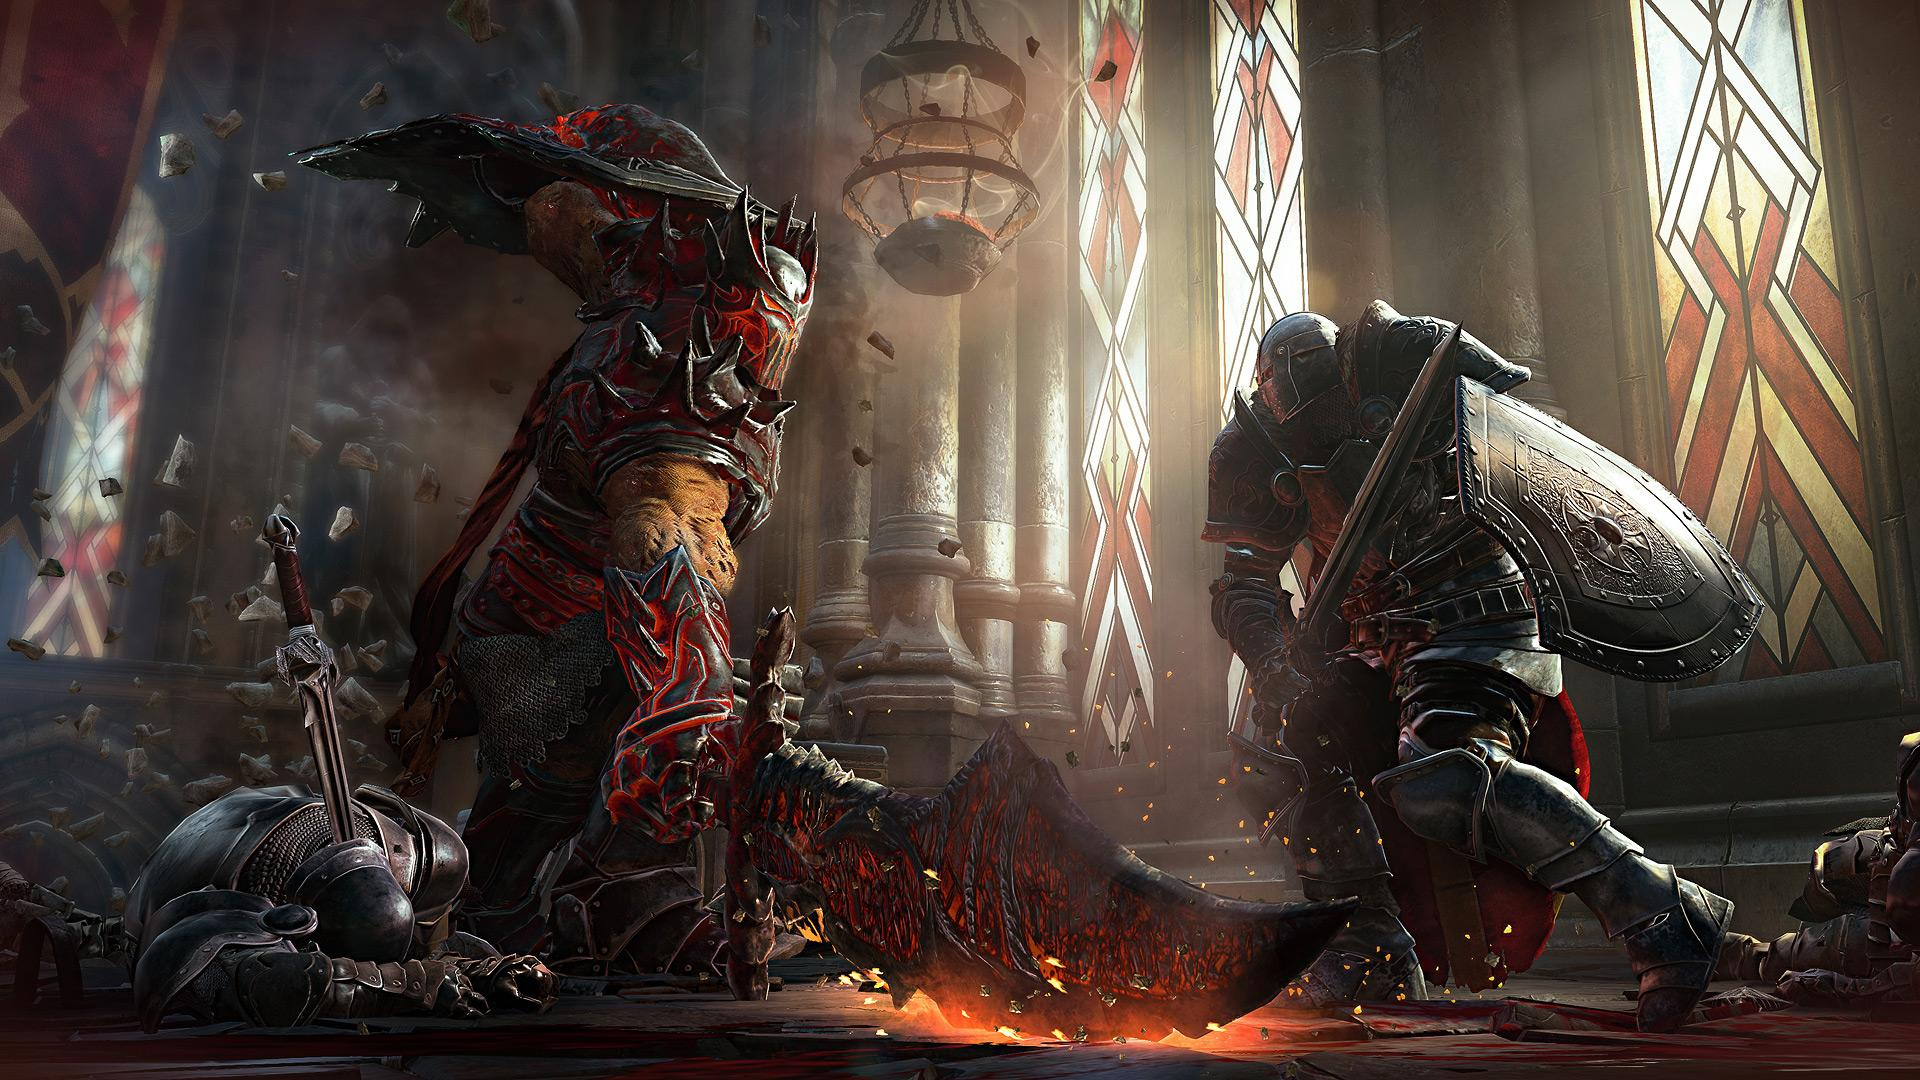 CI Games založilo nové studio HexWorks, to se postará o vývoj Lords of the Fallen 2